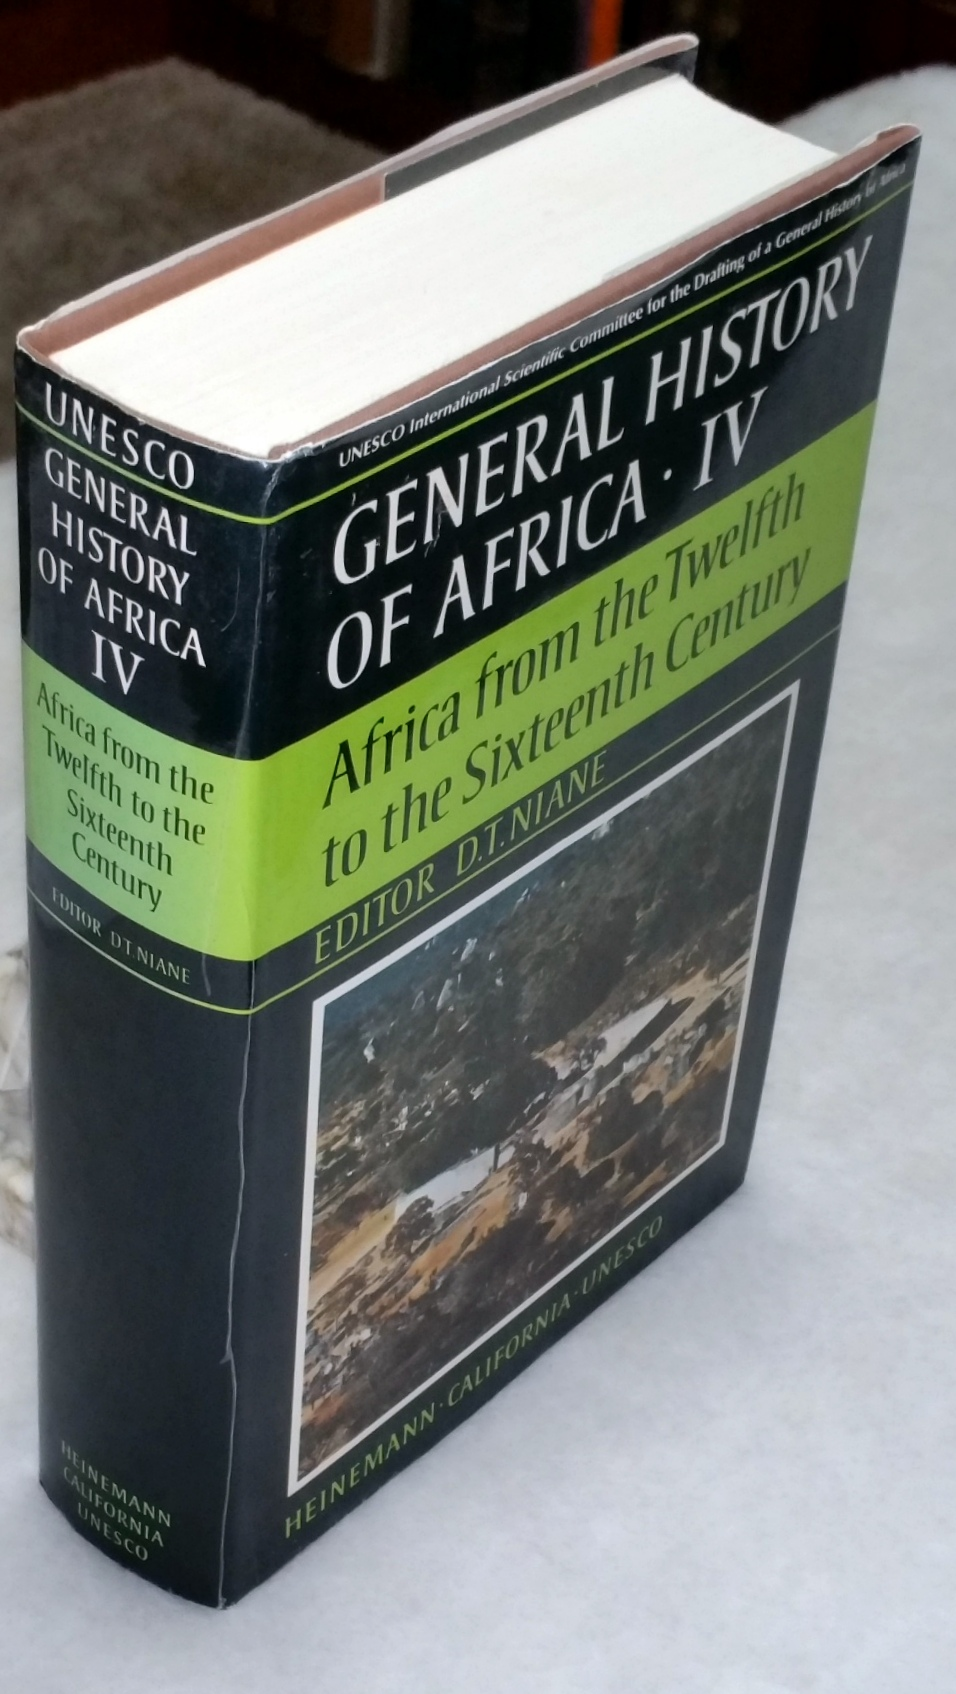 Image for General History of Africa, IV: Africa From the Twelfth to the Sixteenth Century (Volume IV ONLY of the Eight Volume set)